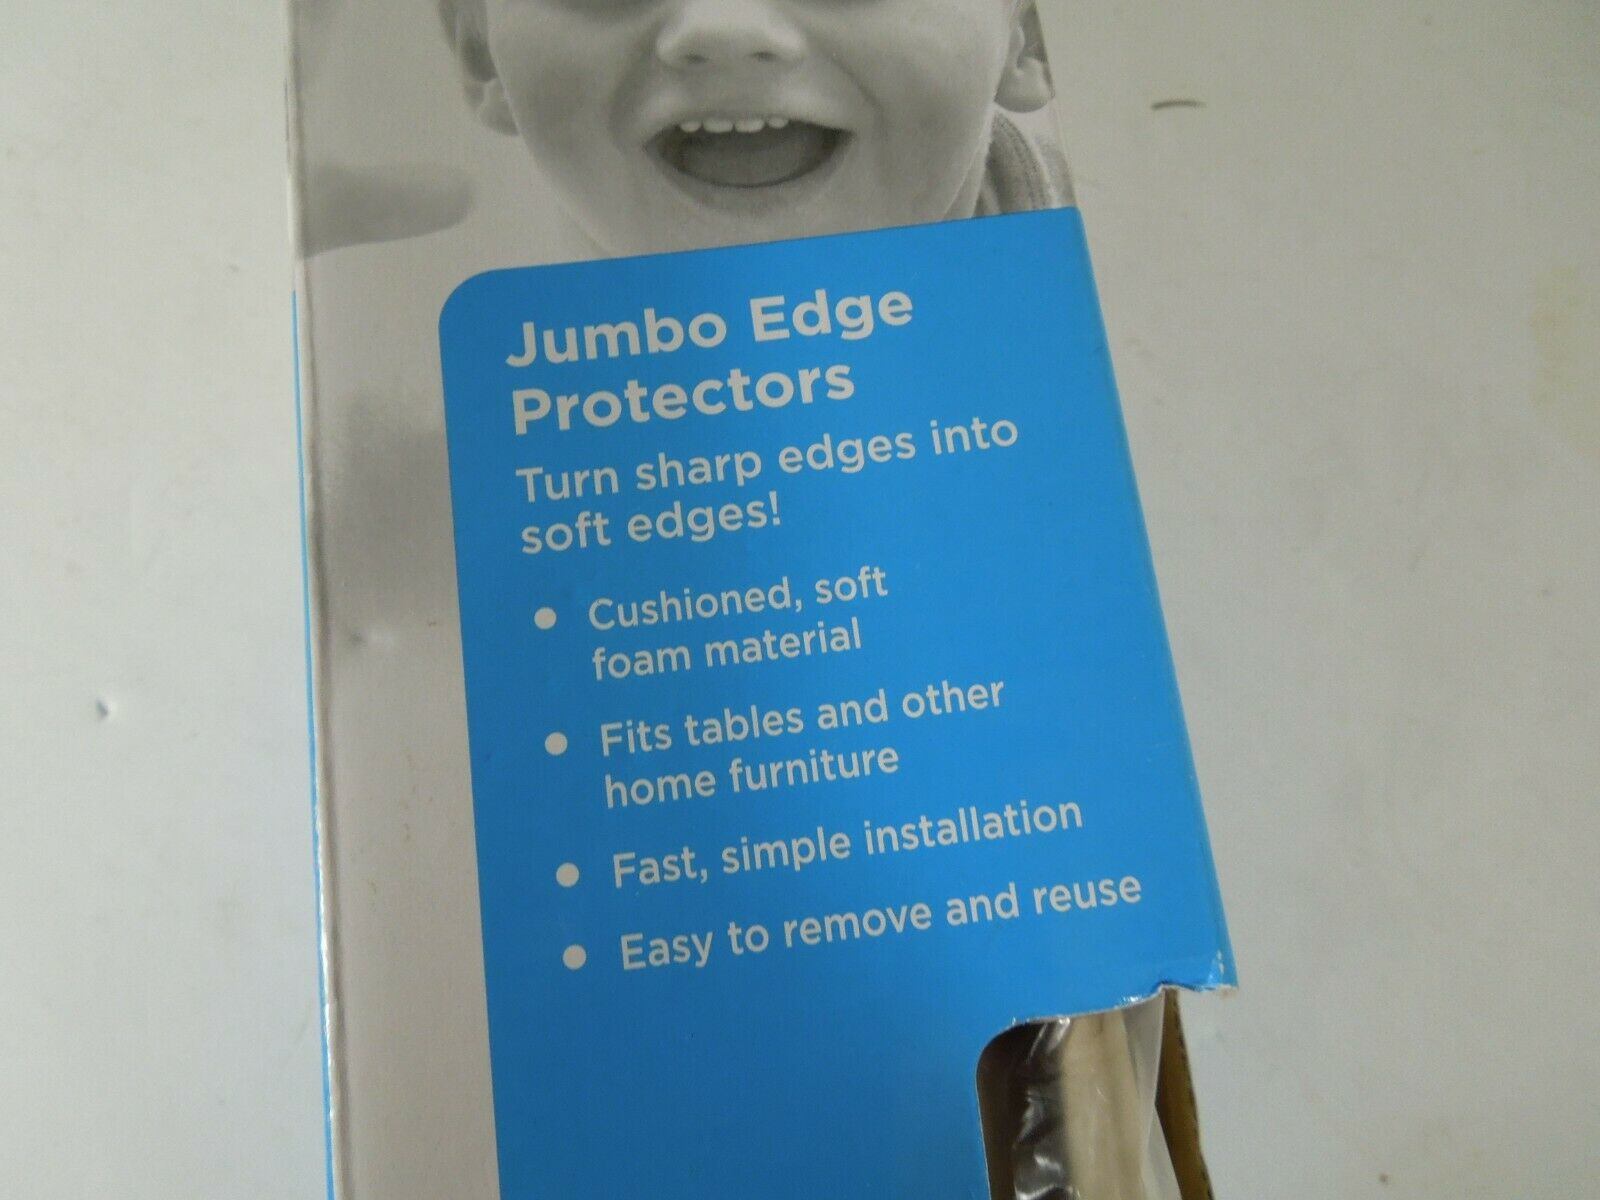 Safety 1st Jumbo Edge Protectors Cushioned Table Bumpers Beige Model 48817A - $15.96